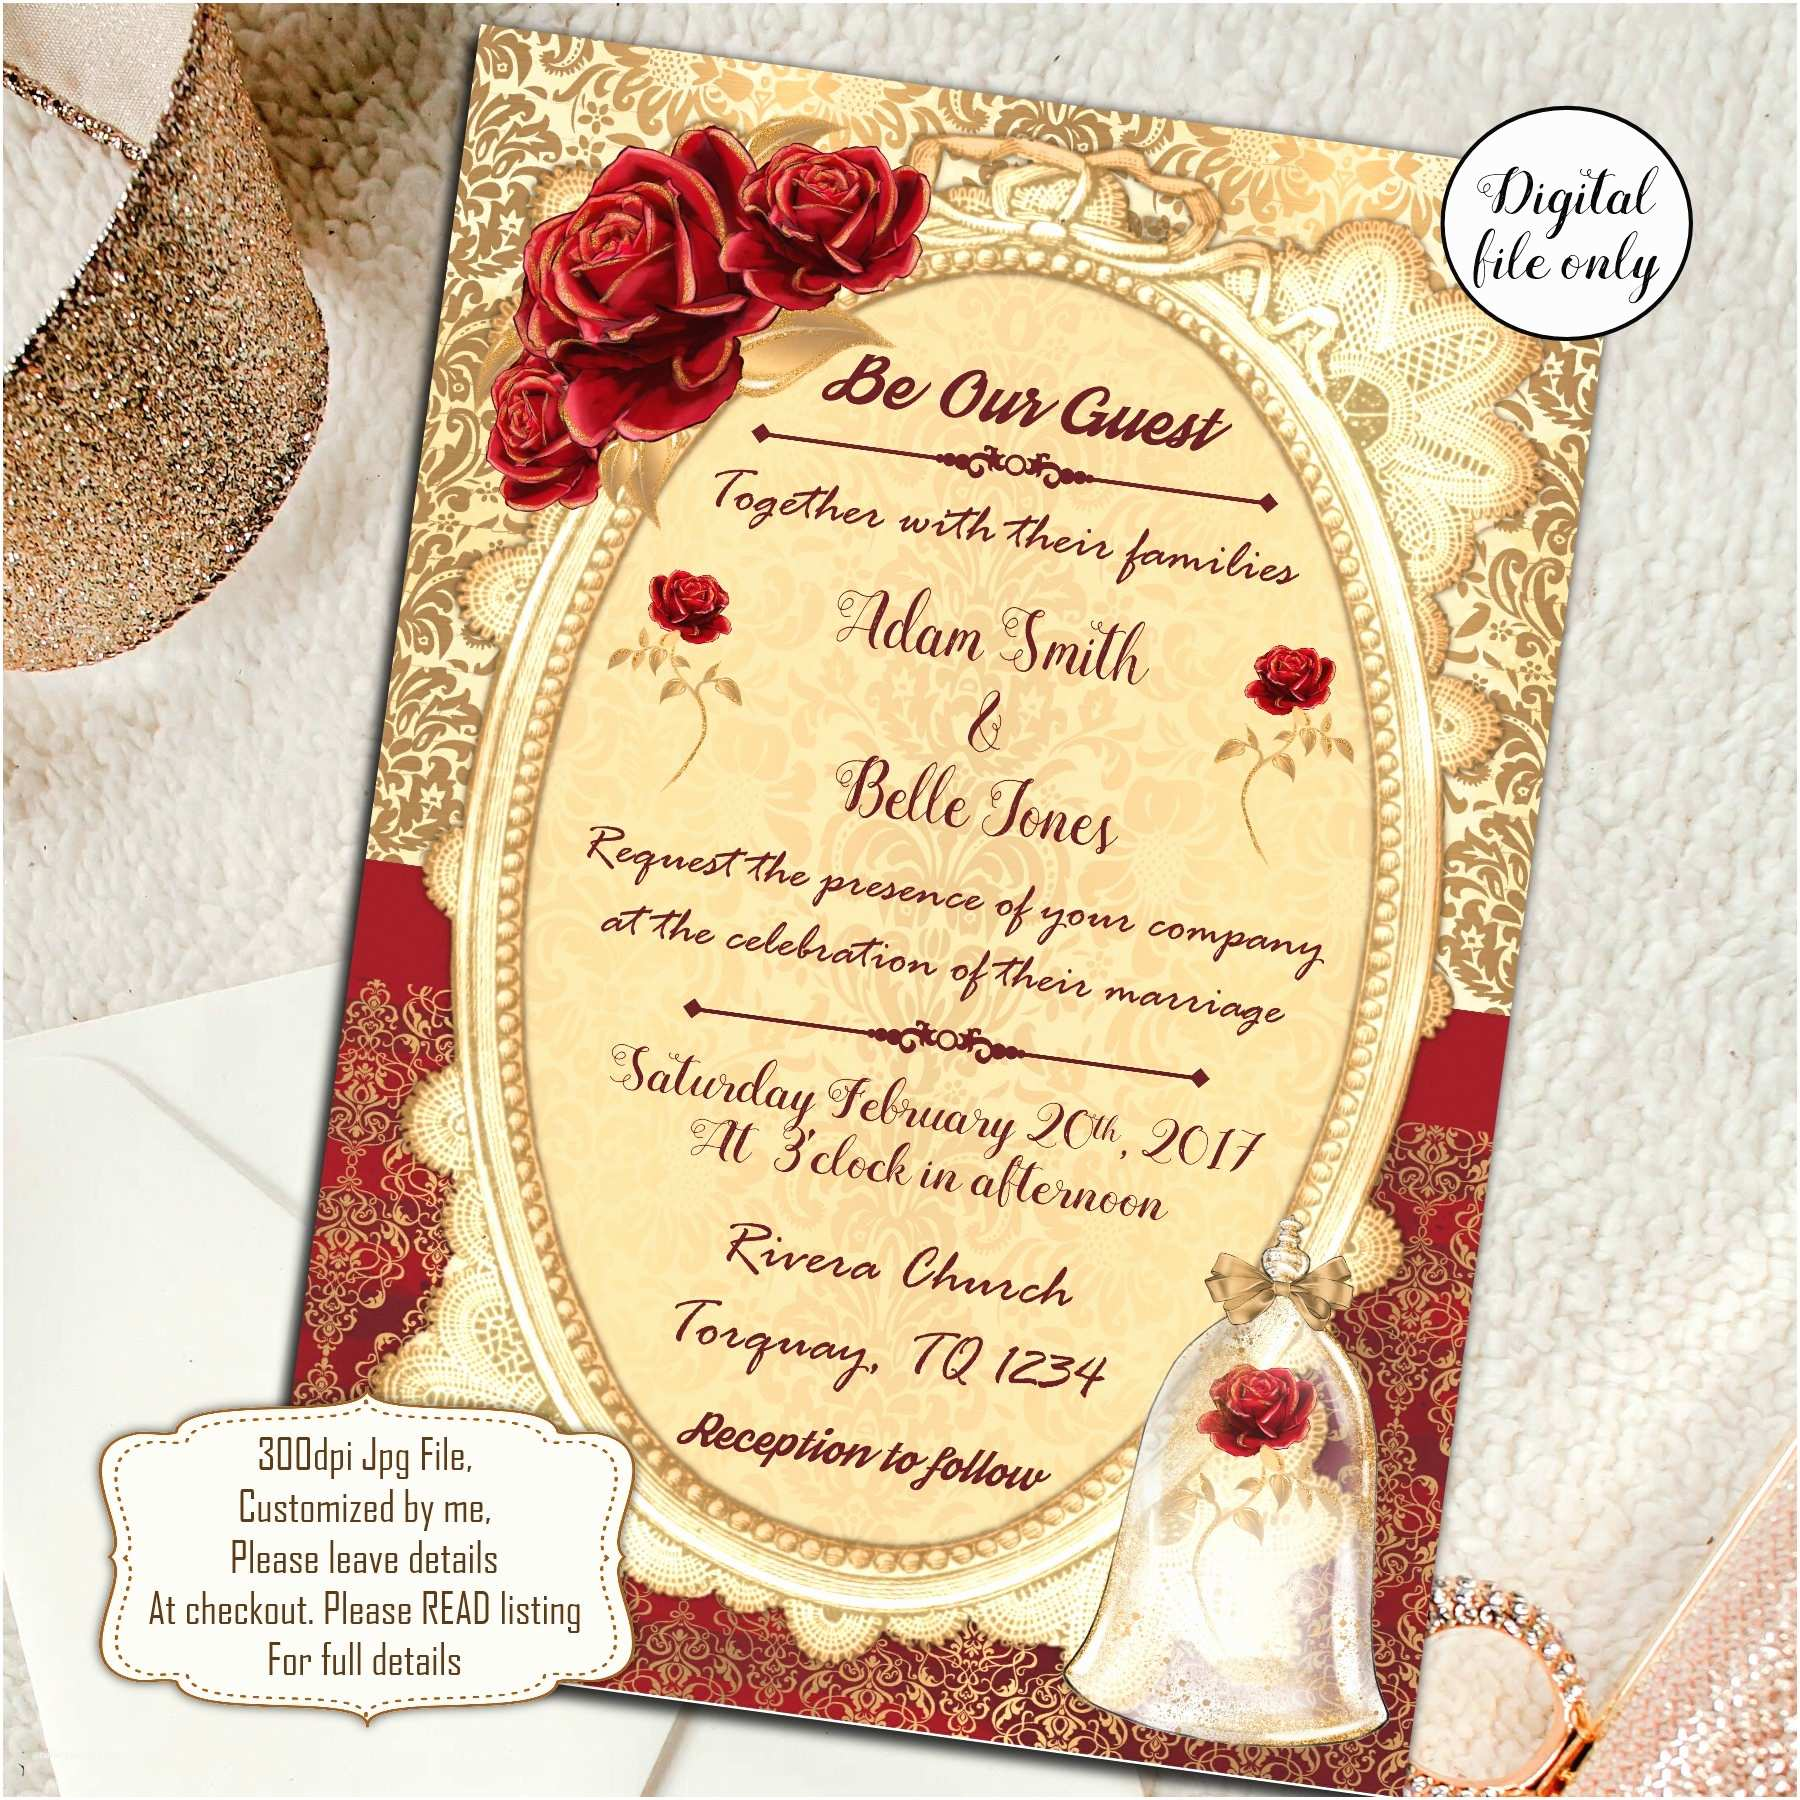 Beauty And The Beast Inspired Wedding Invitations Beauty And The Beast Wedding Invitations Wedding Invite